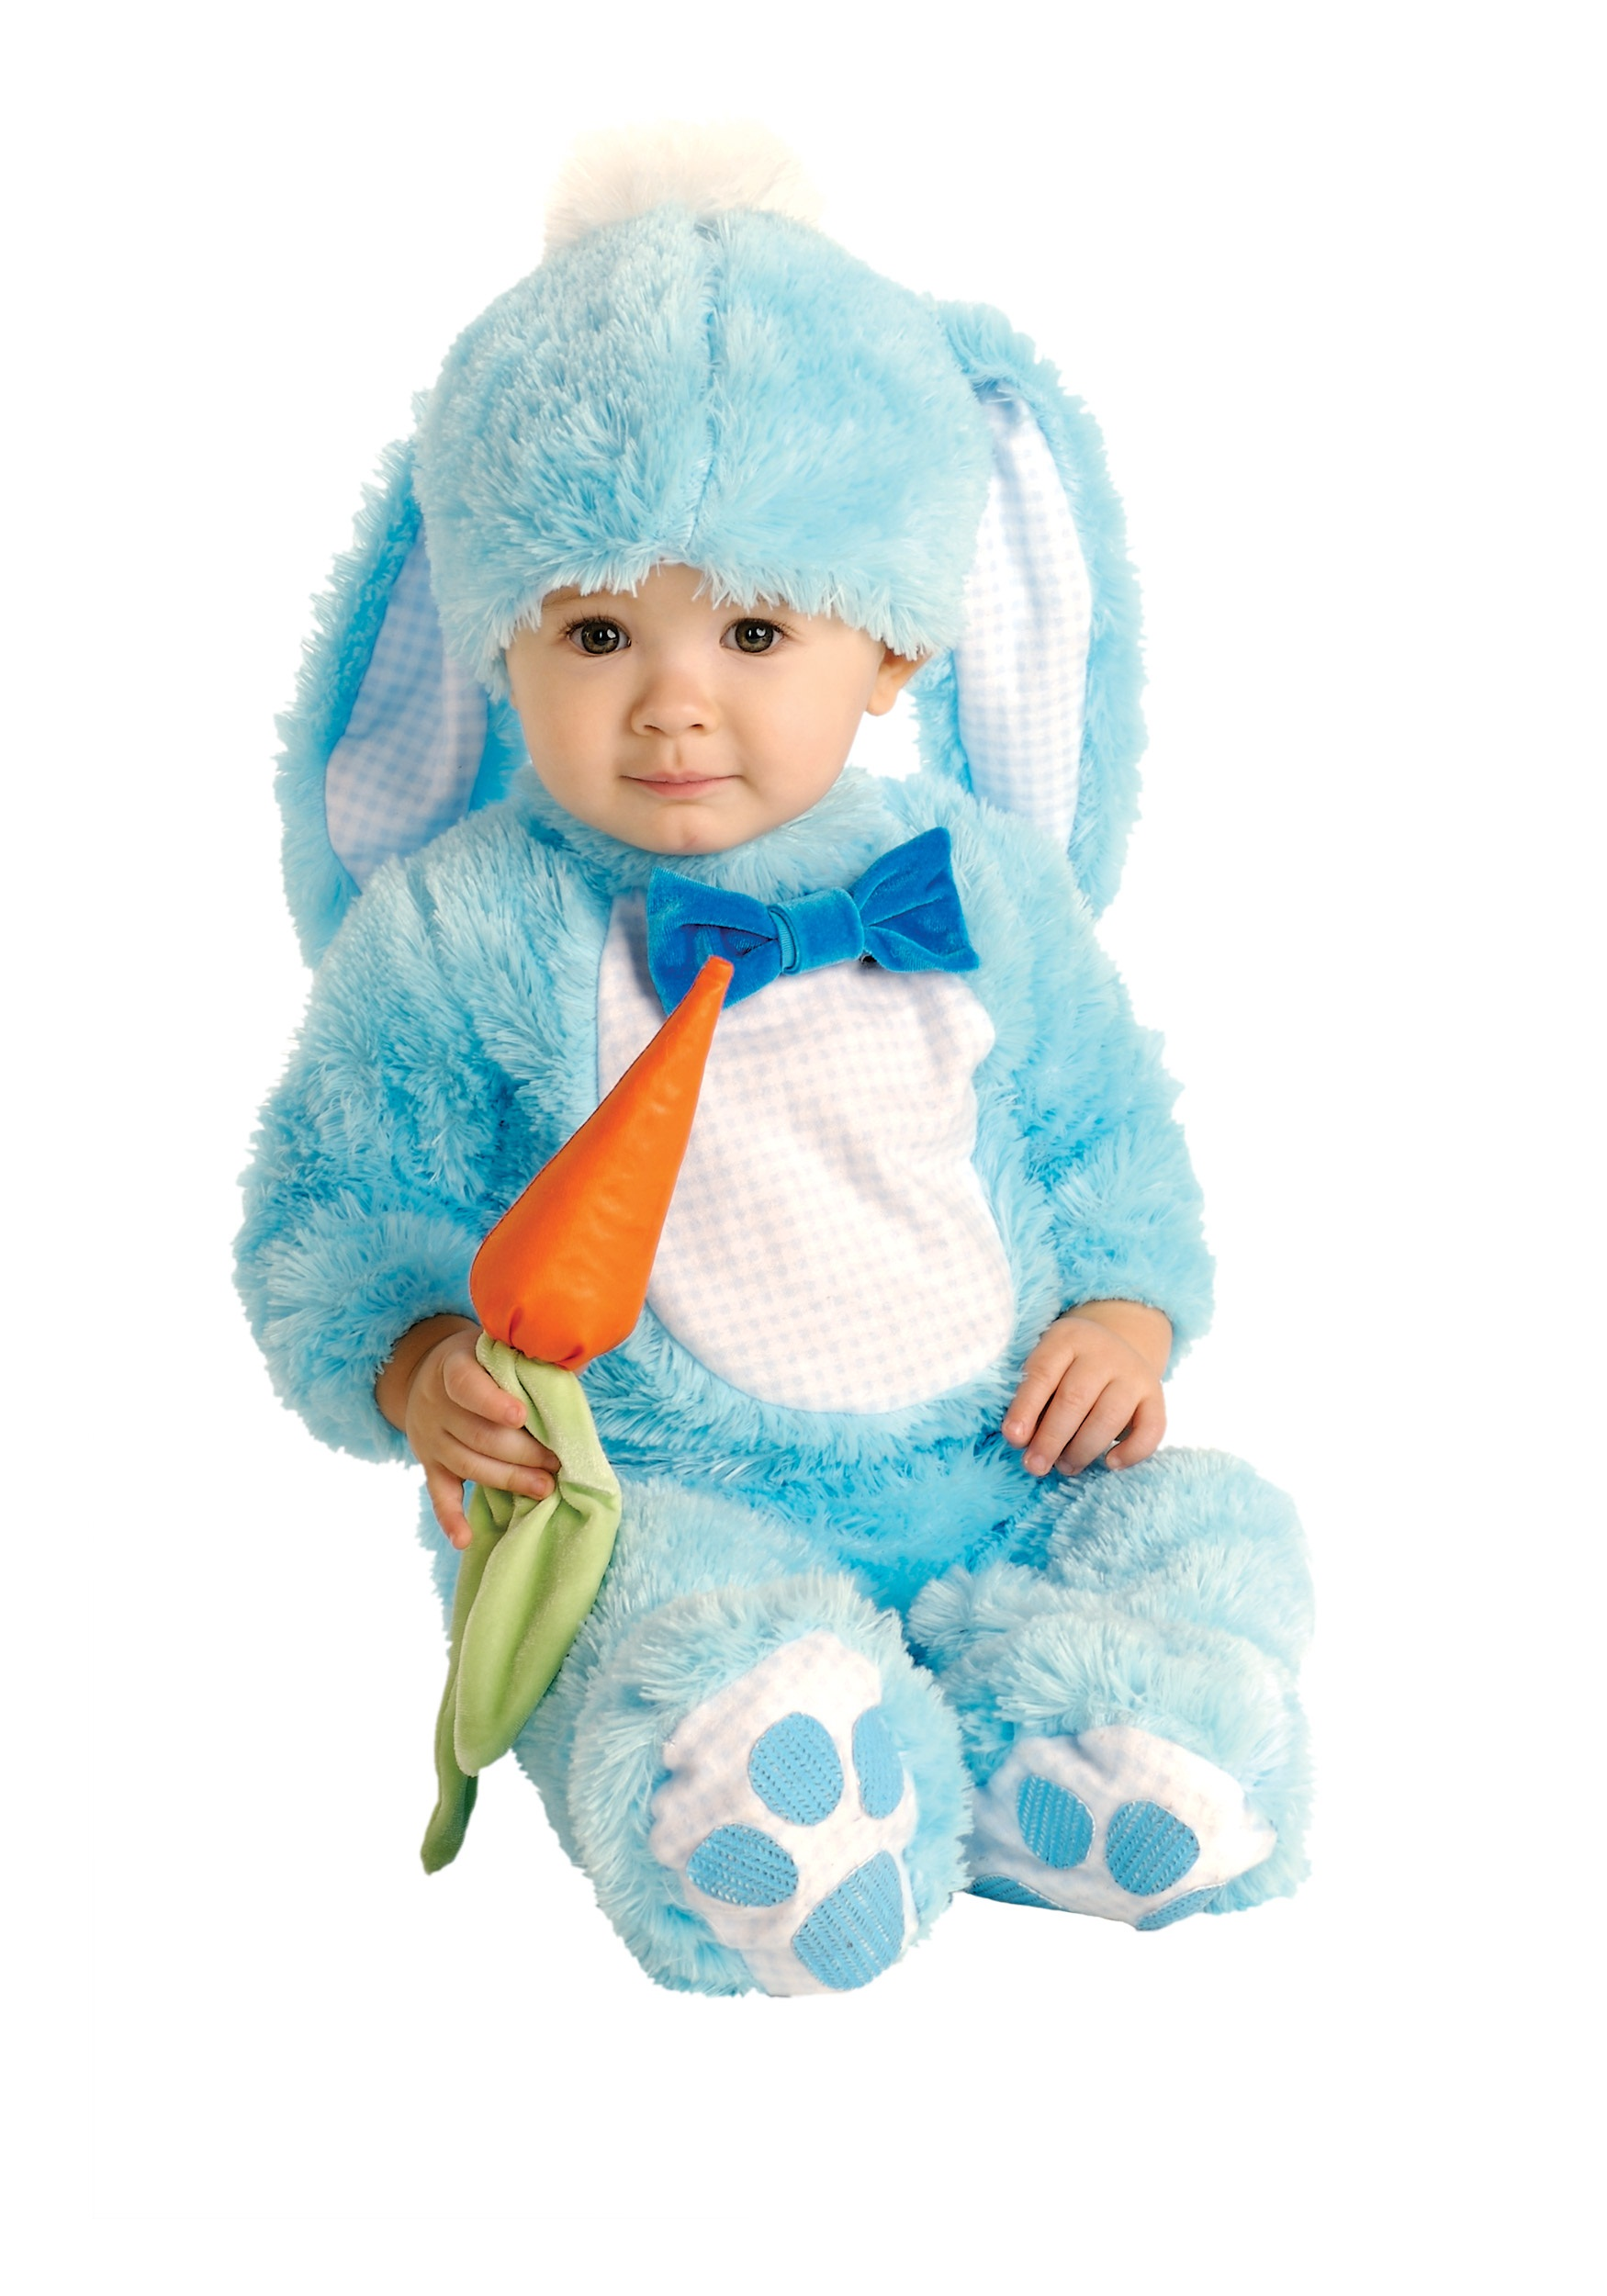 Baby Blue And White 10 Year Bedrooms: Baby Blue Bunny Costume